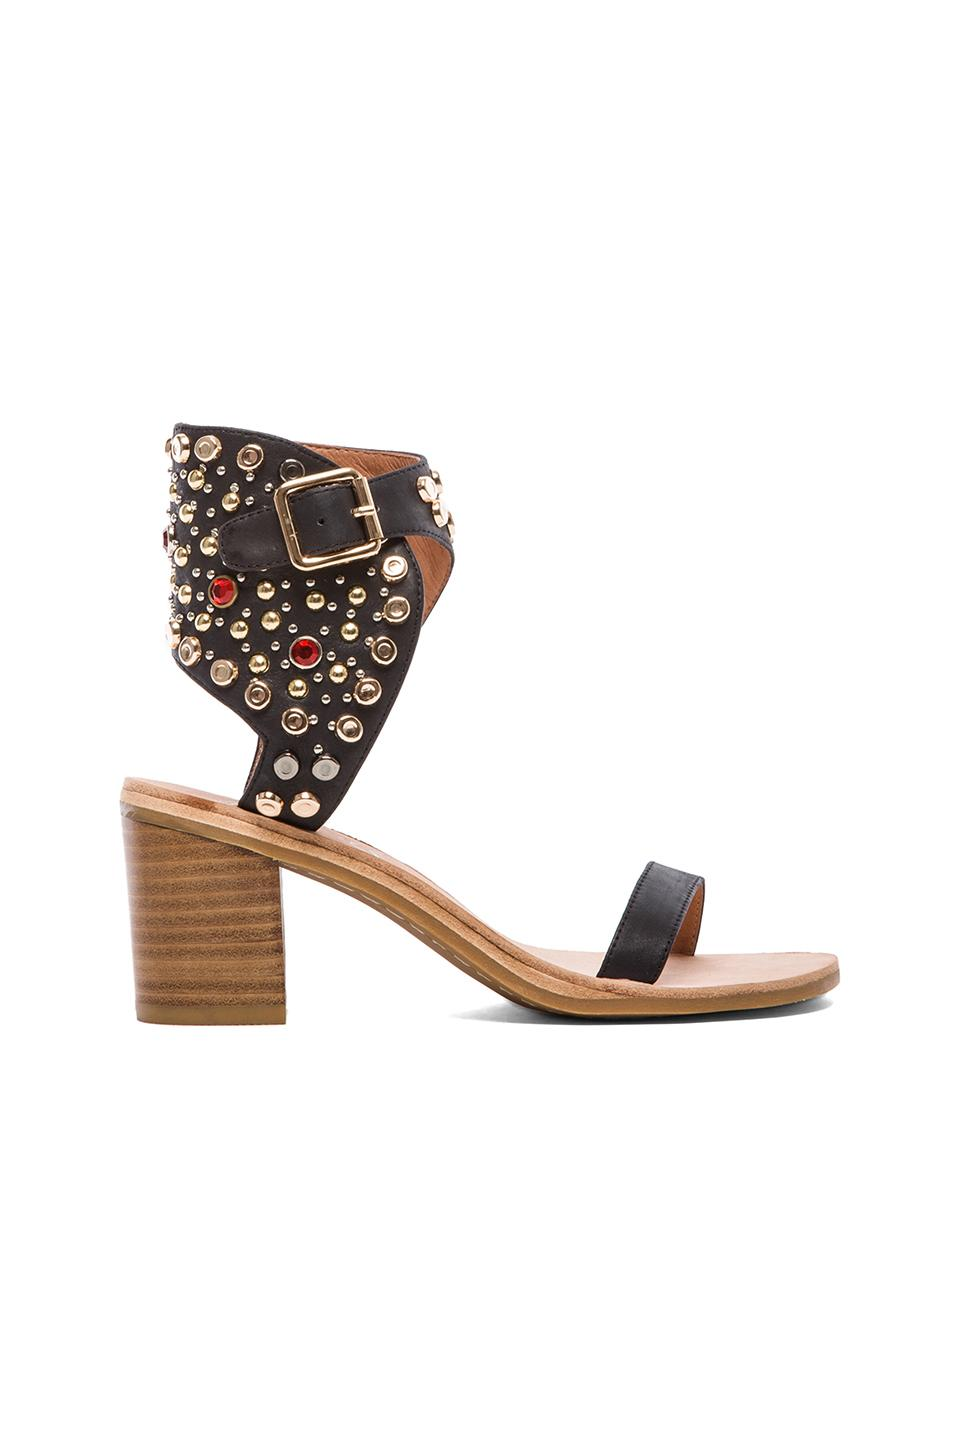 Jeffrey Campbell Seneca in Black Leather Multi